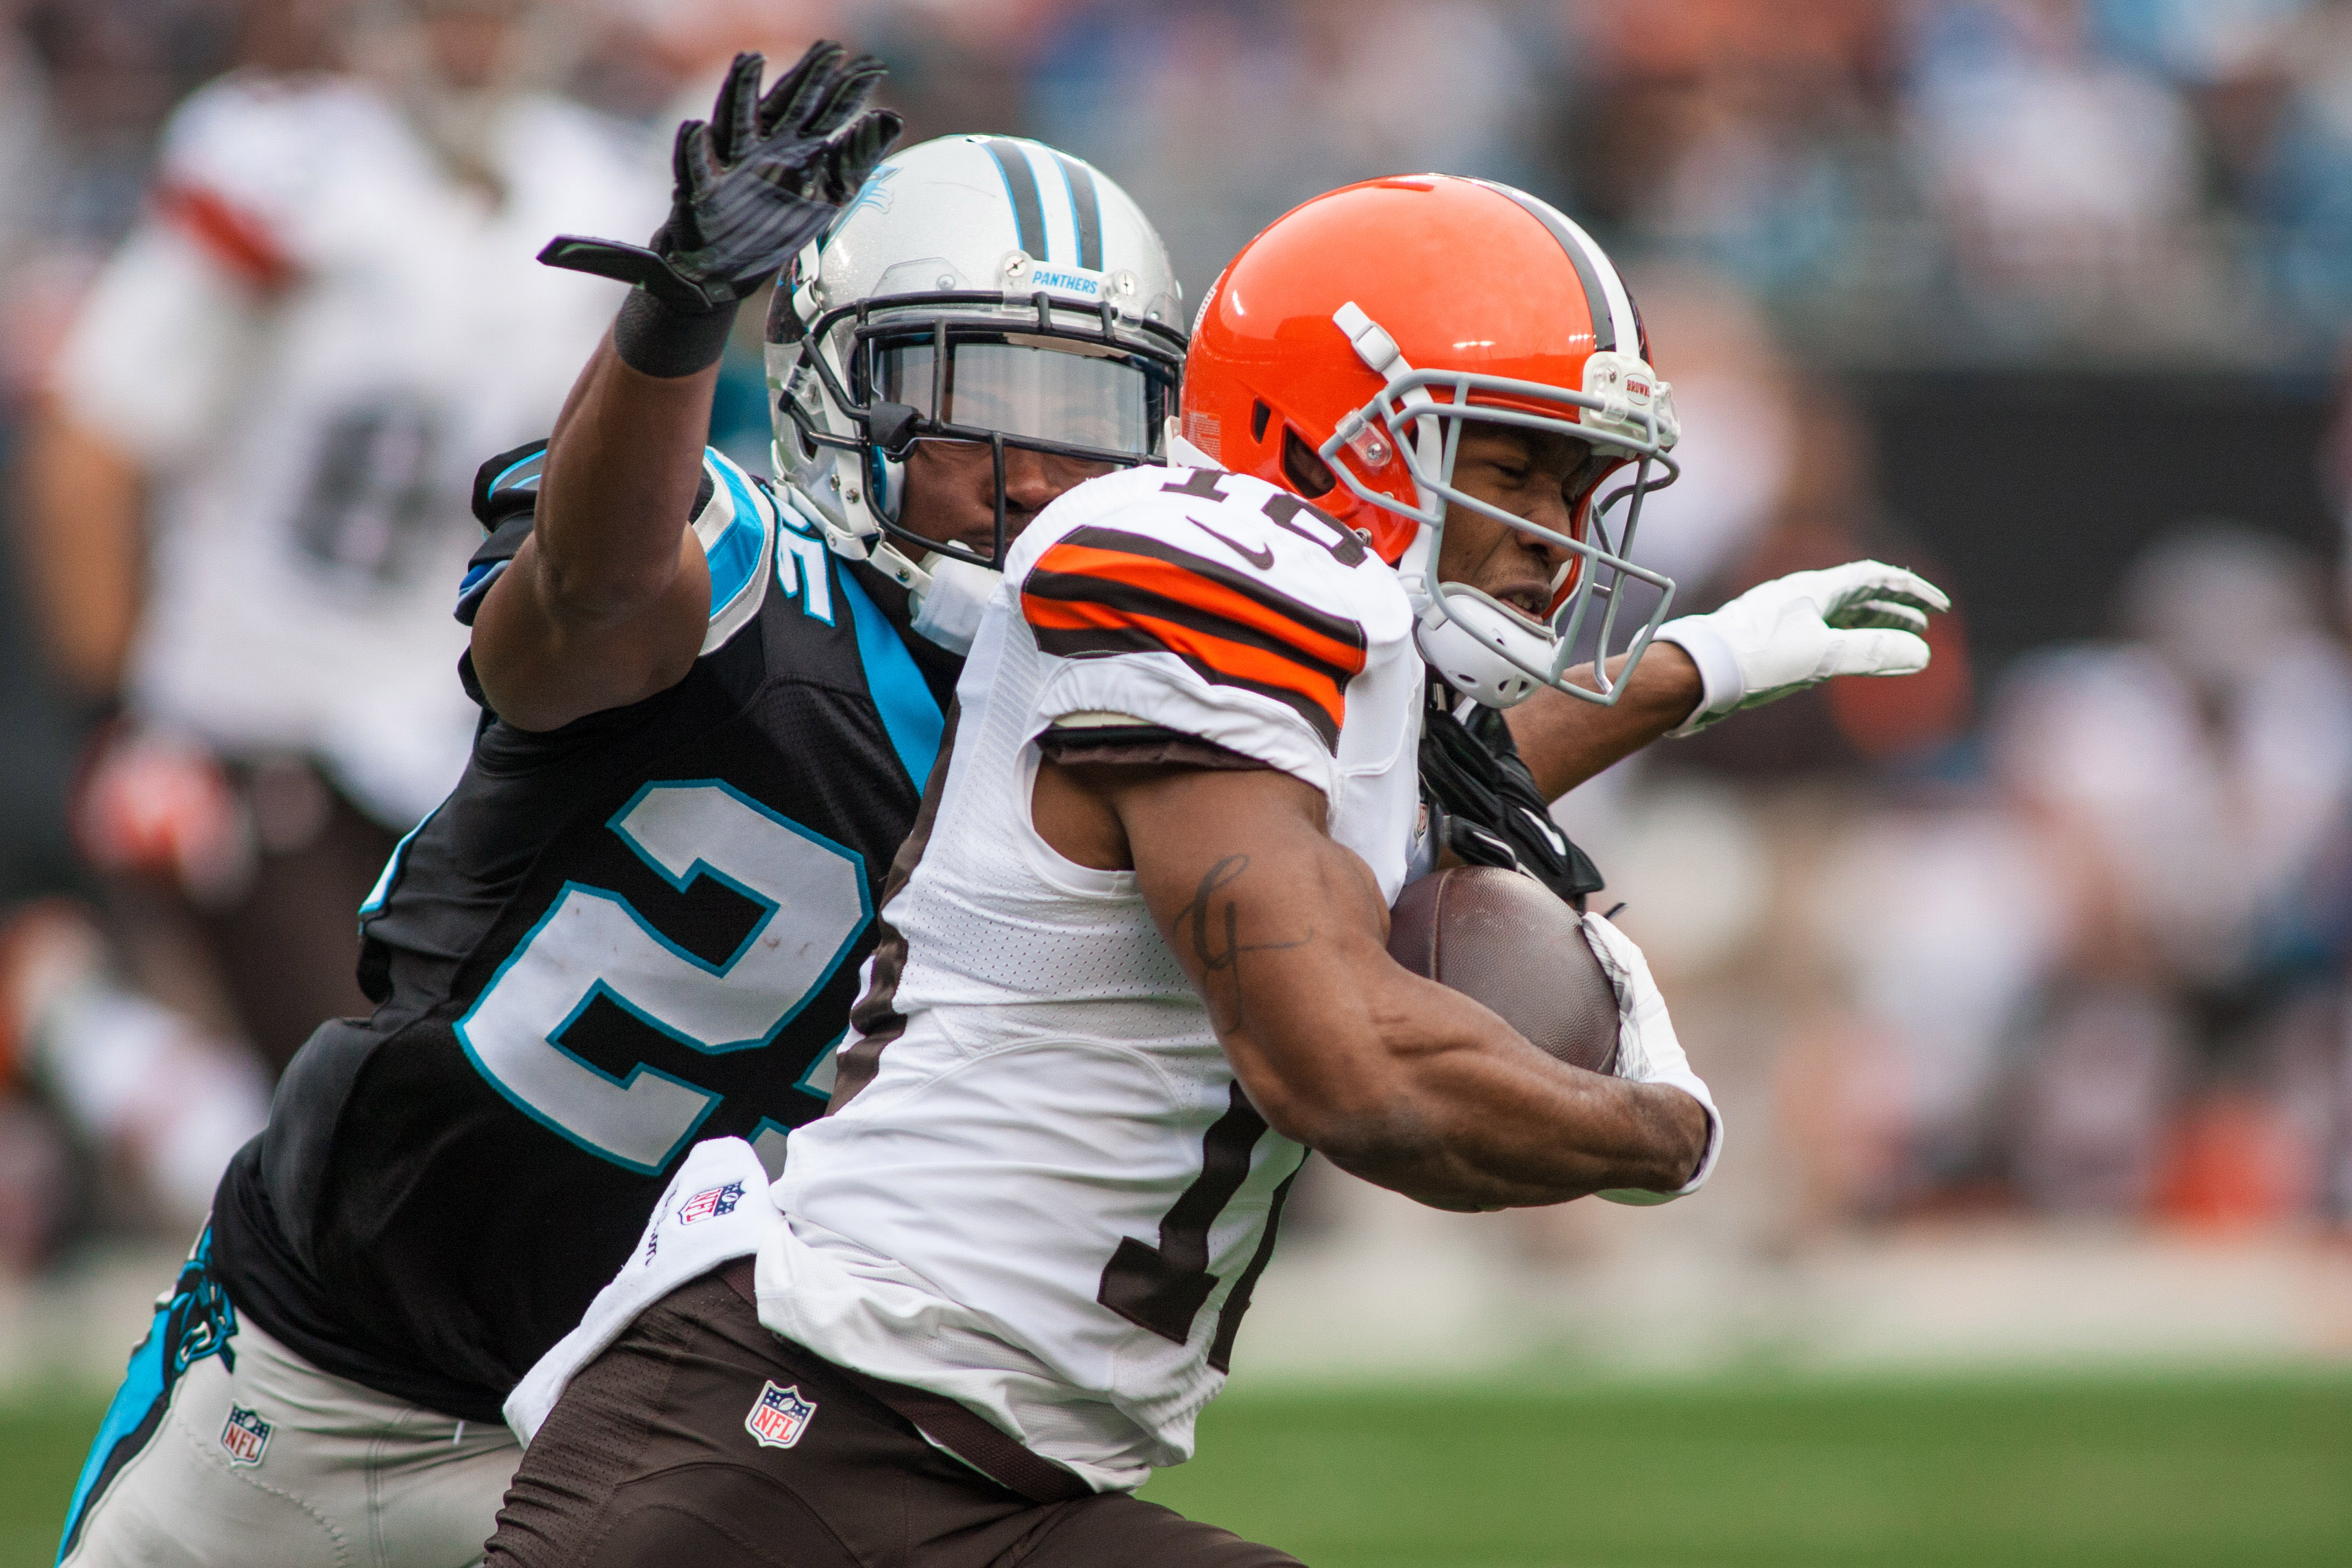 8283715-nfl-cleveland-browns-at-carolina-panthers